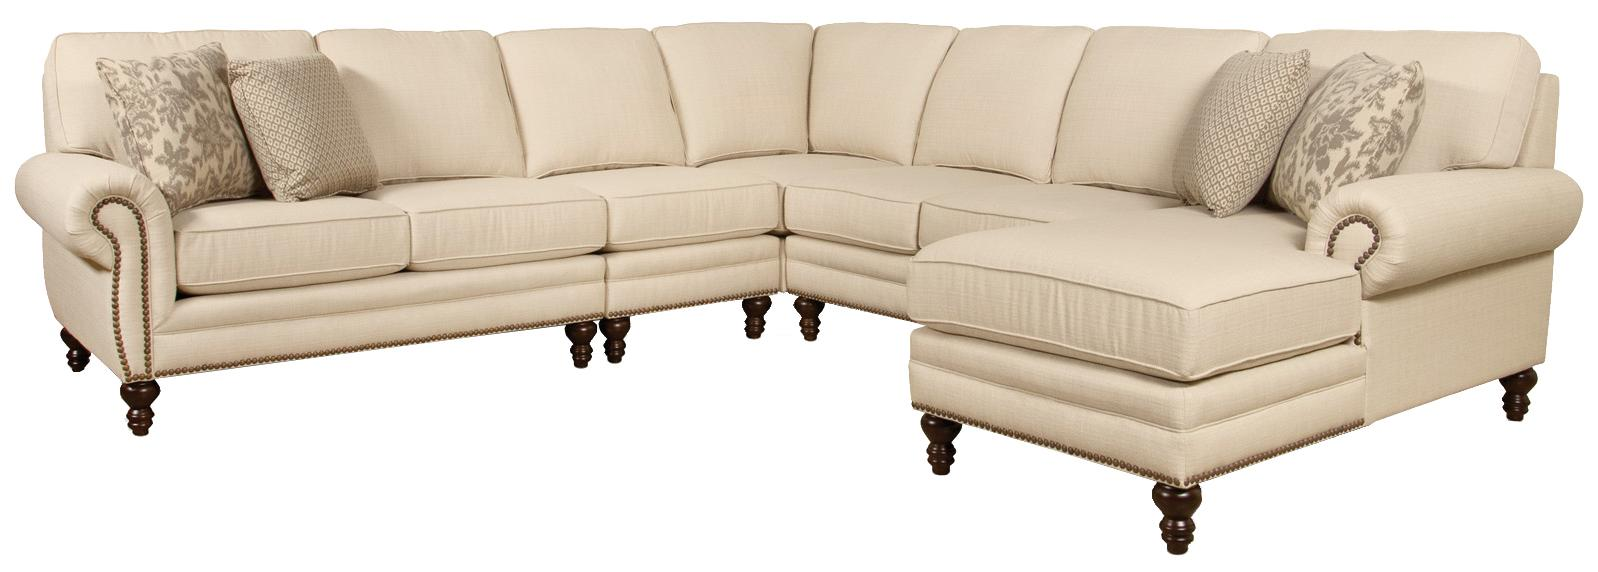 England Amix  Seven Seat Sectional with Right Chaise - Item Number: 7130-28+39+22+43+05